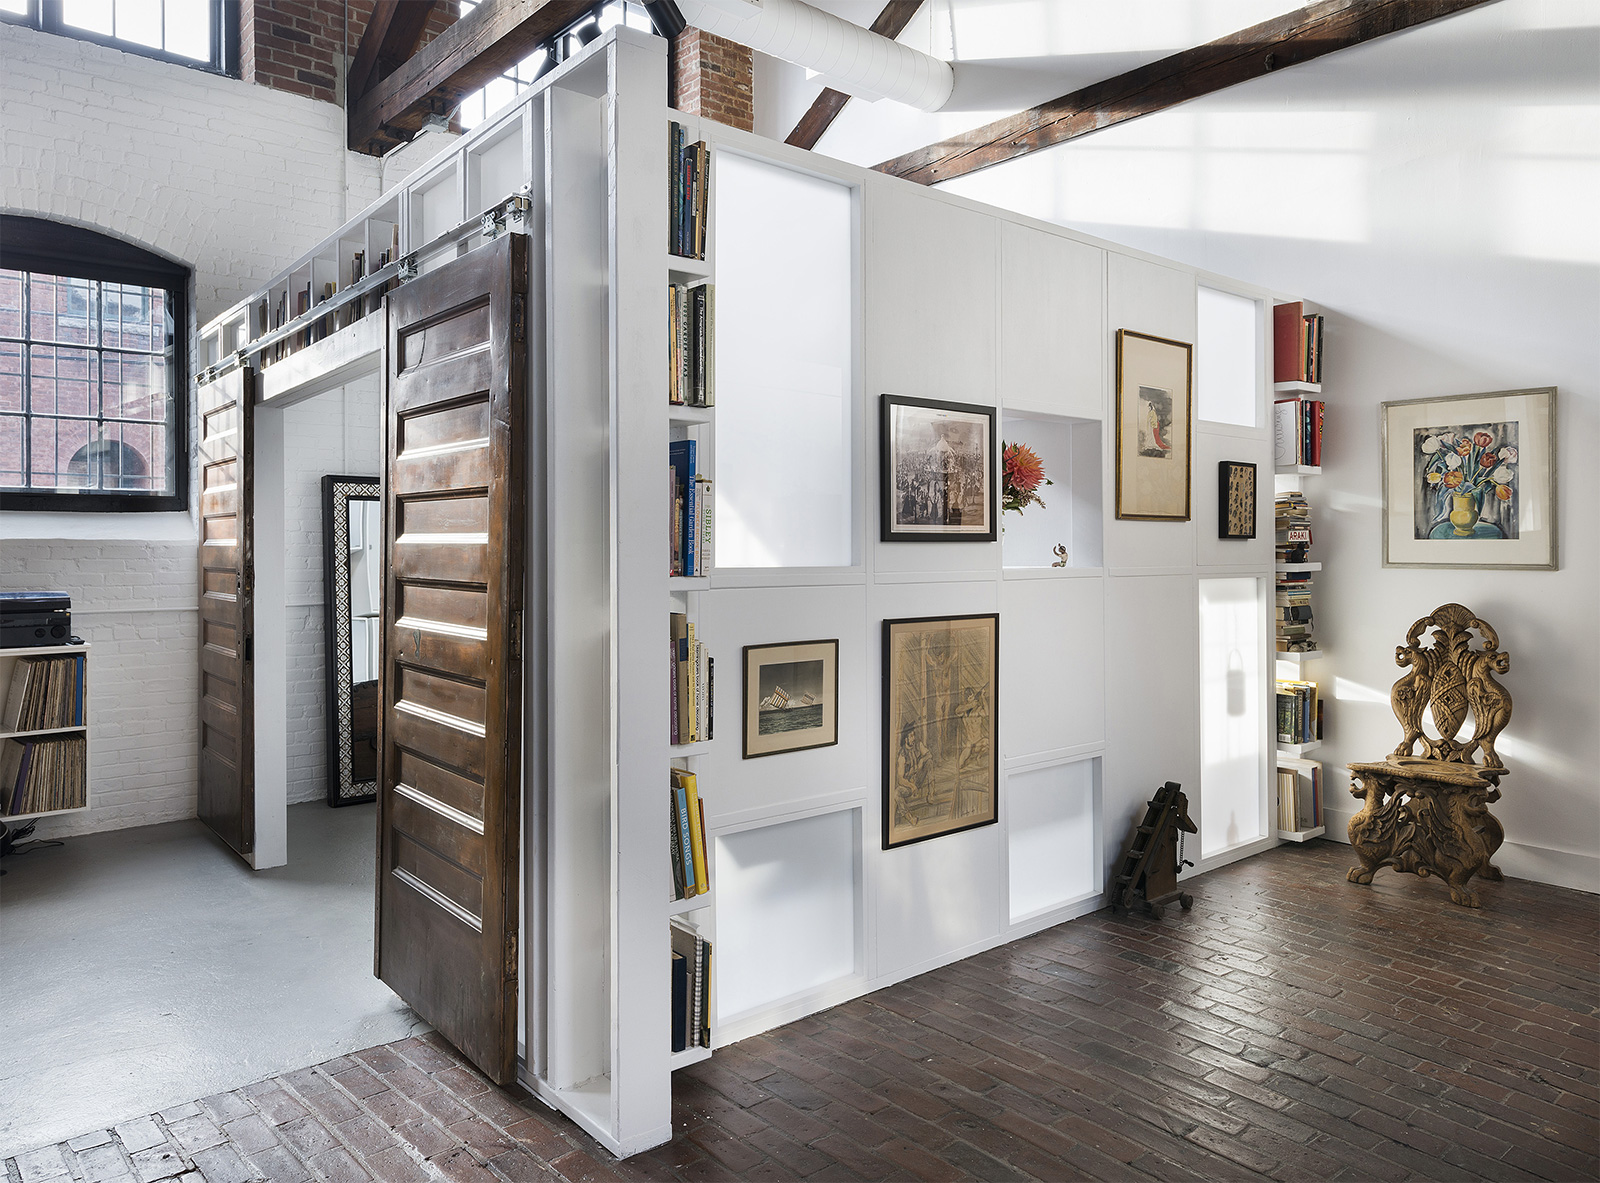 Ceramicist's converted dye mill is for sale in Rhode Island